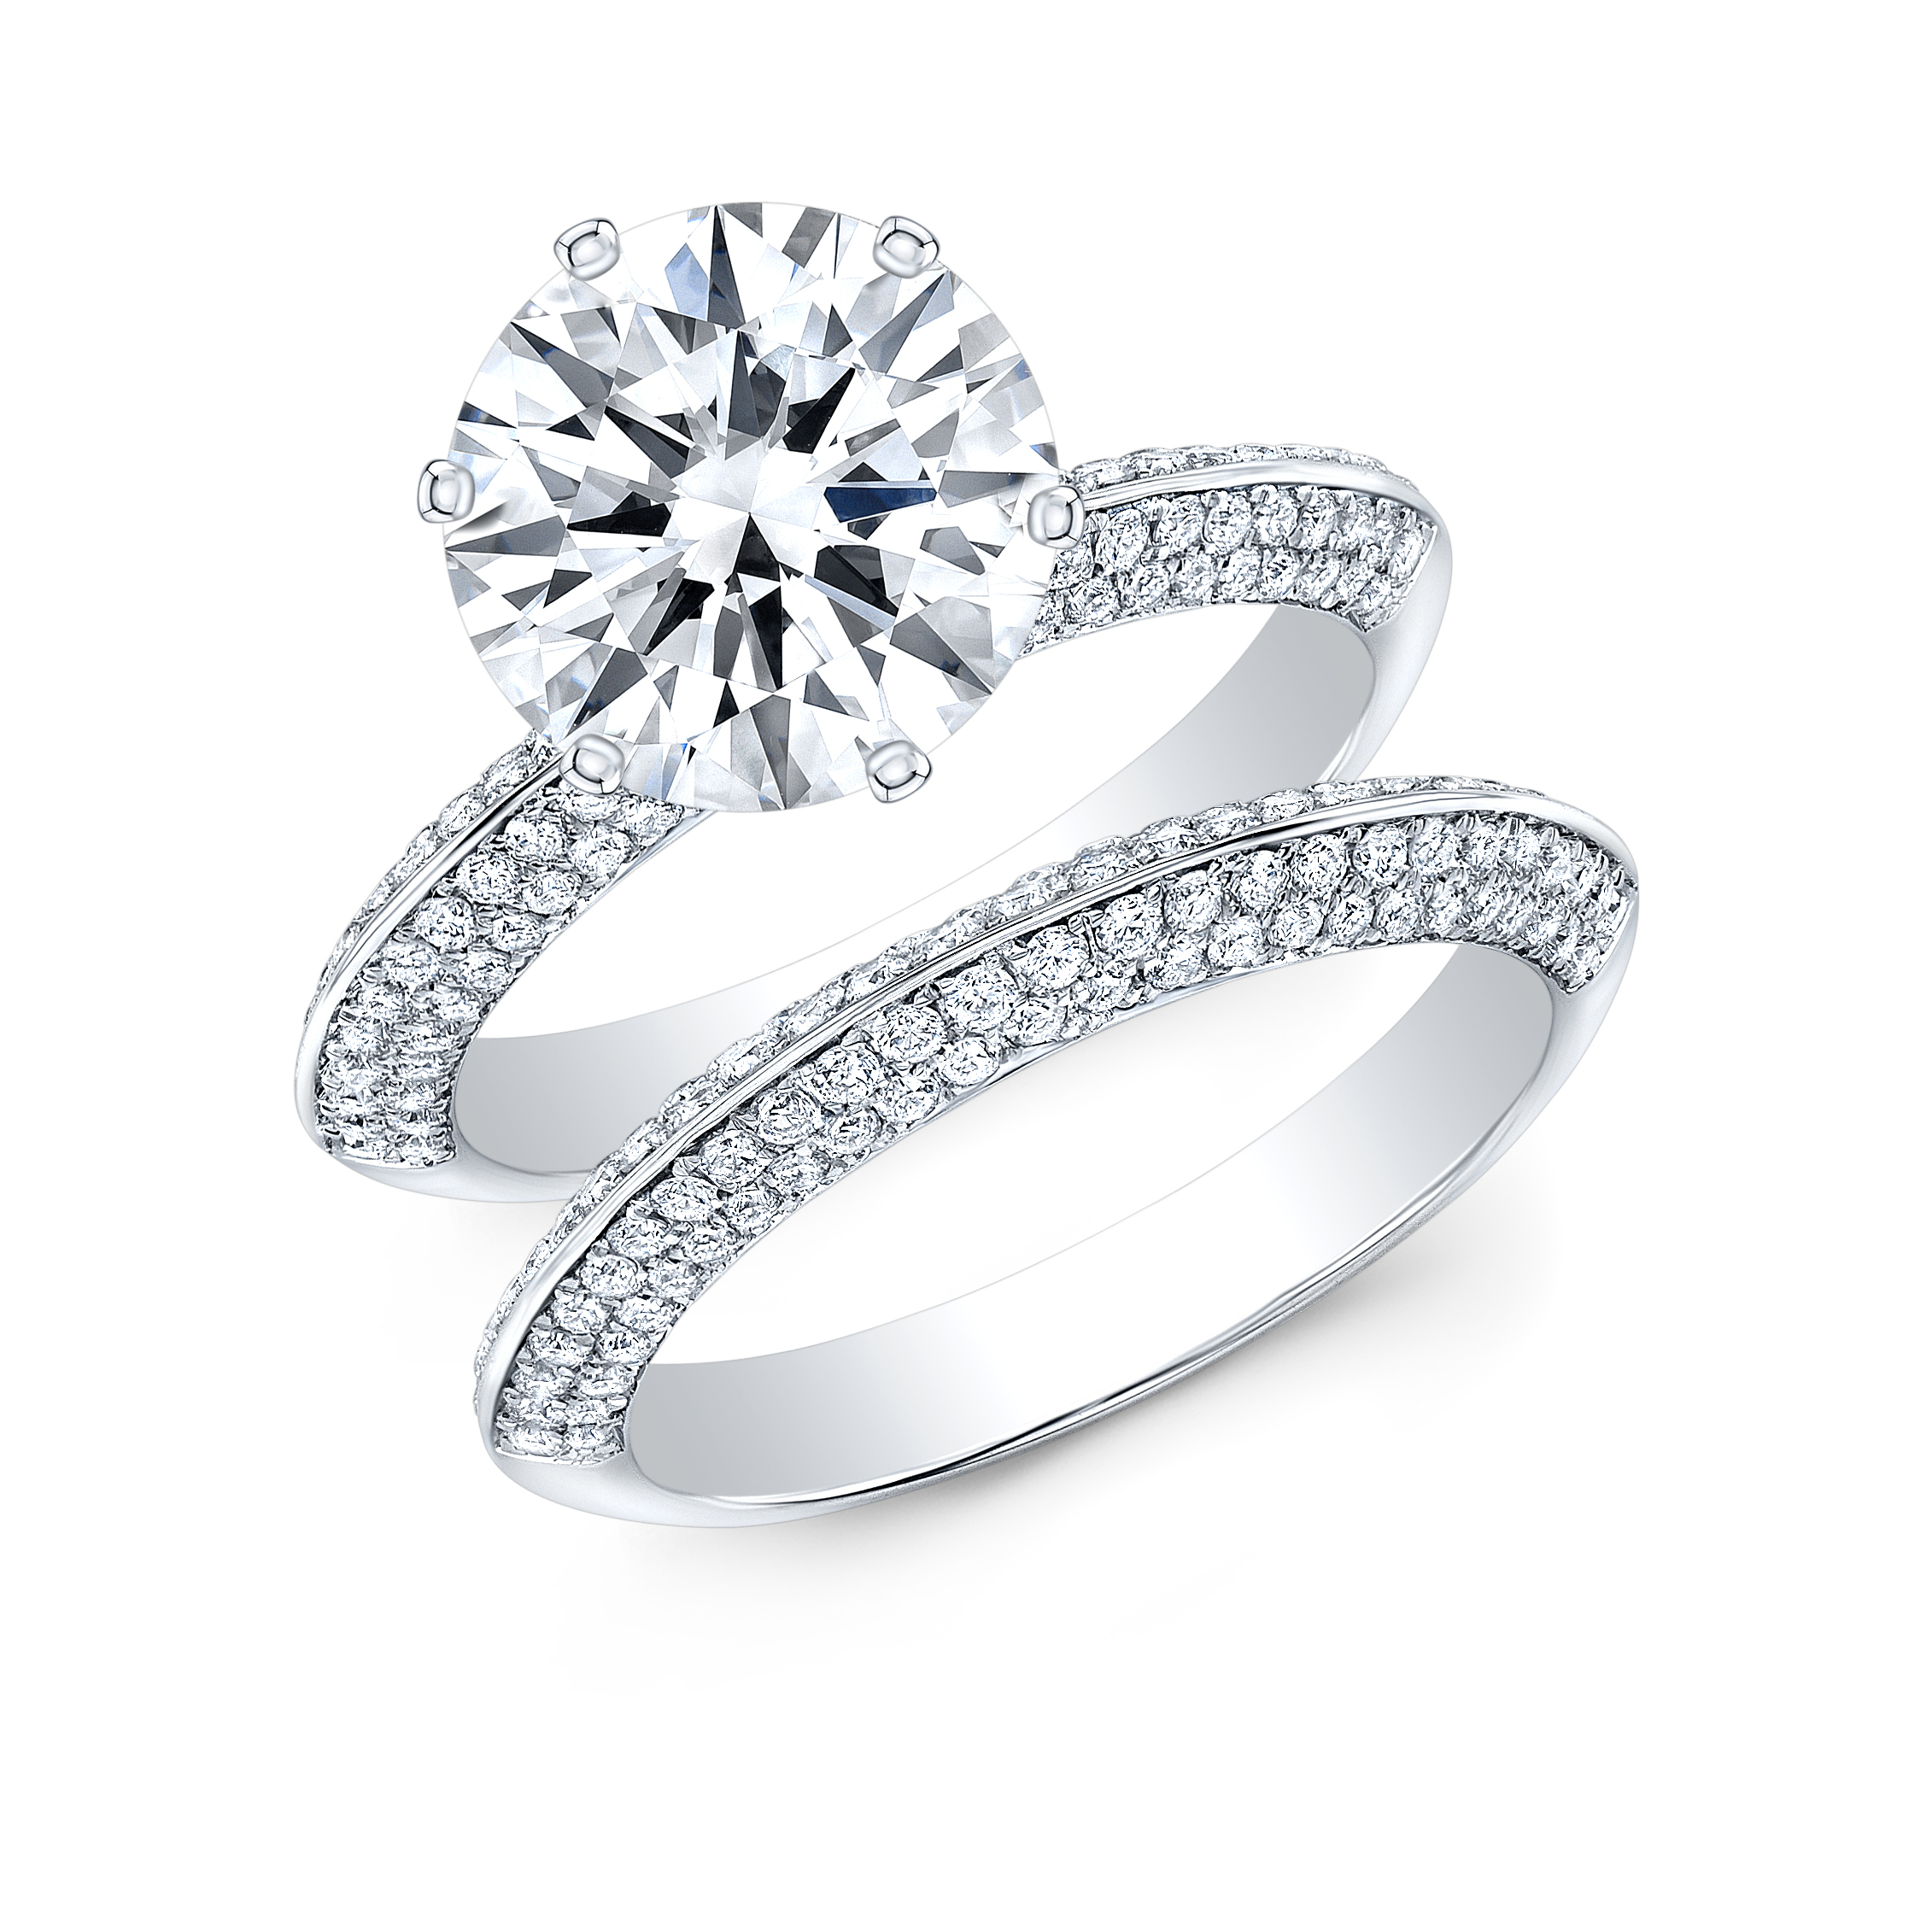 Knife Edge Micro Pave 6 Prong Engagement Ring